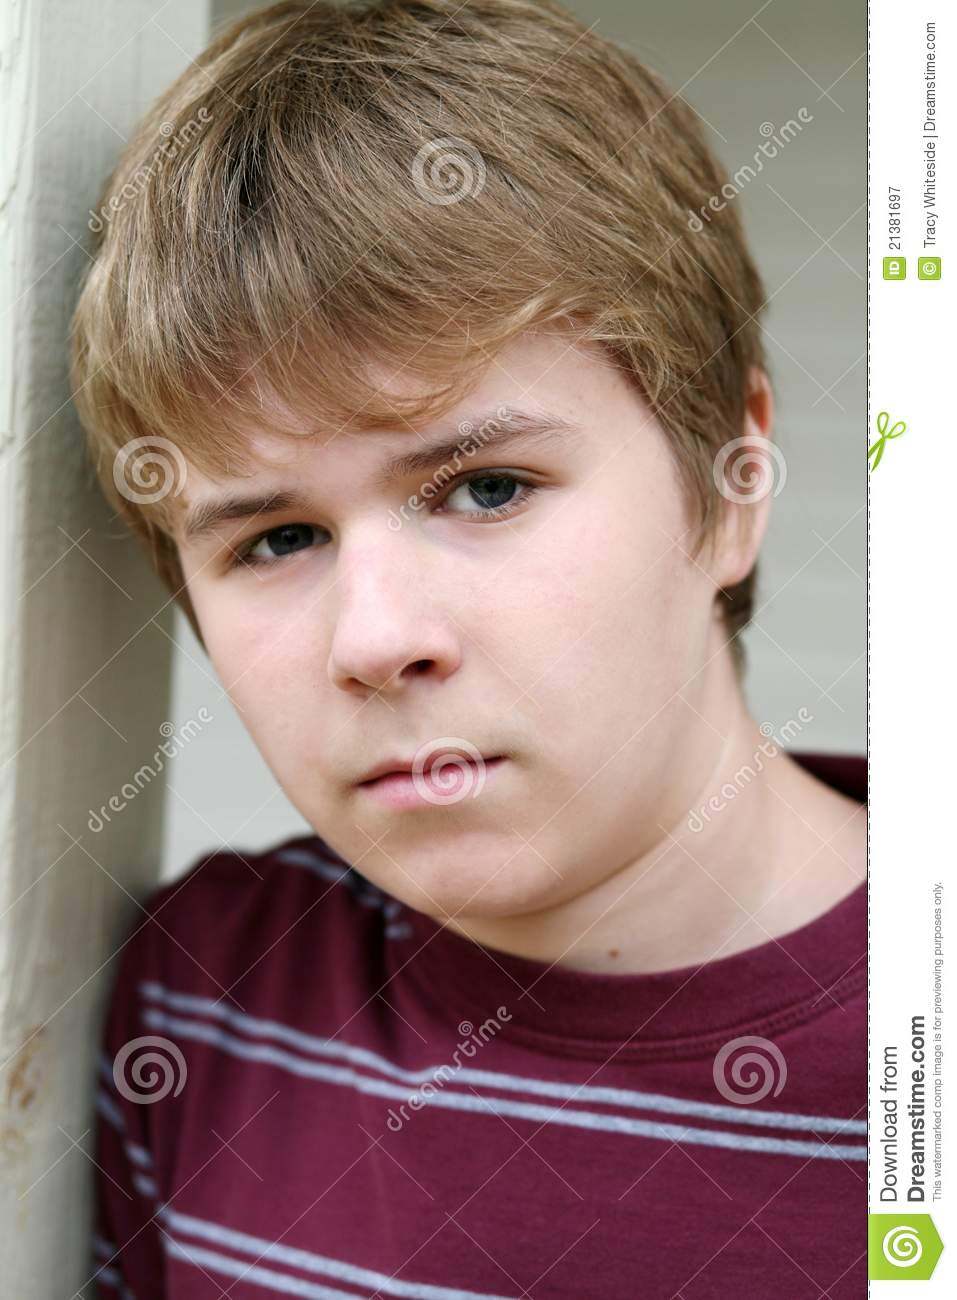 Closeup of cute young teen boy with serious expression.